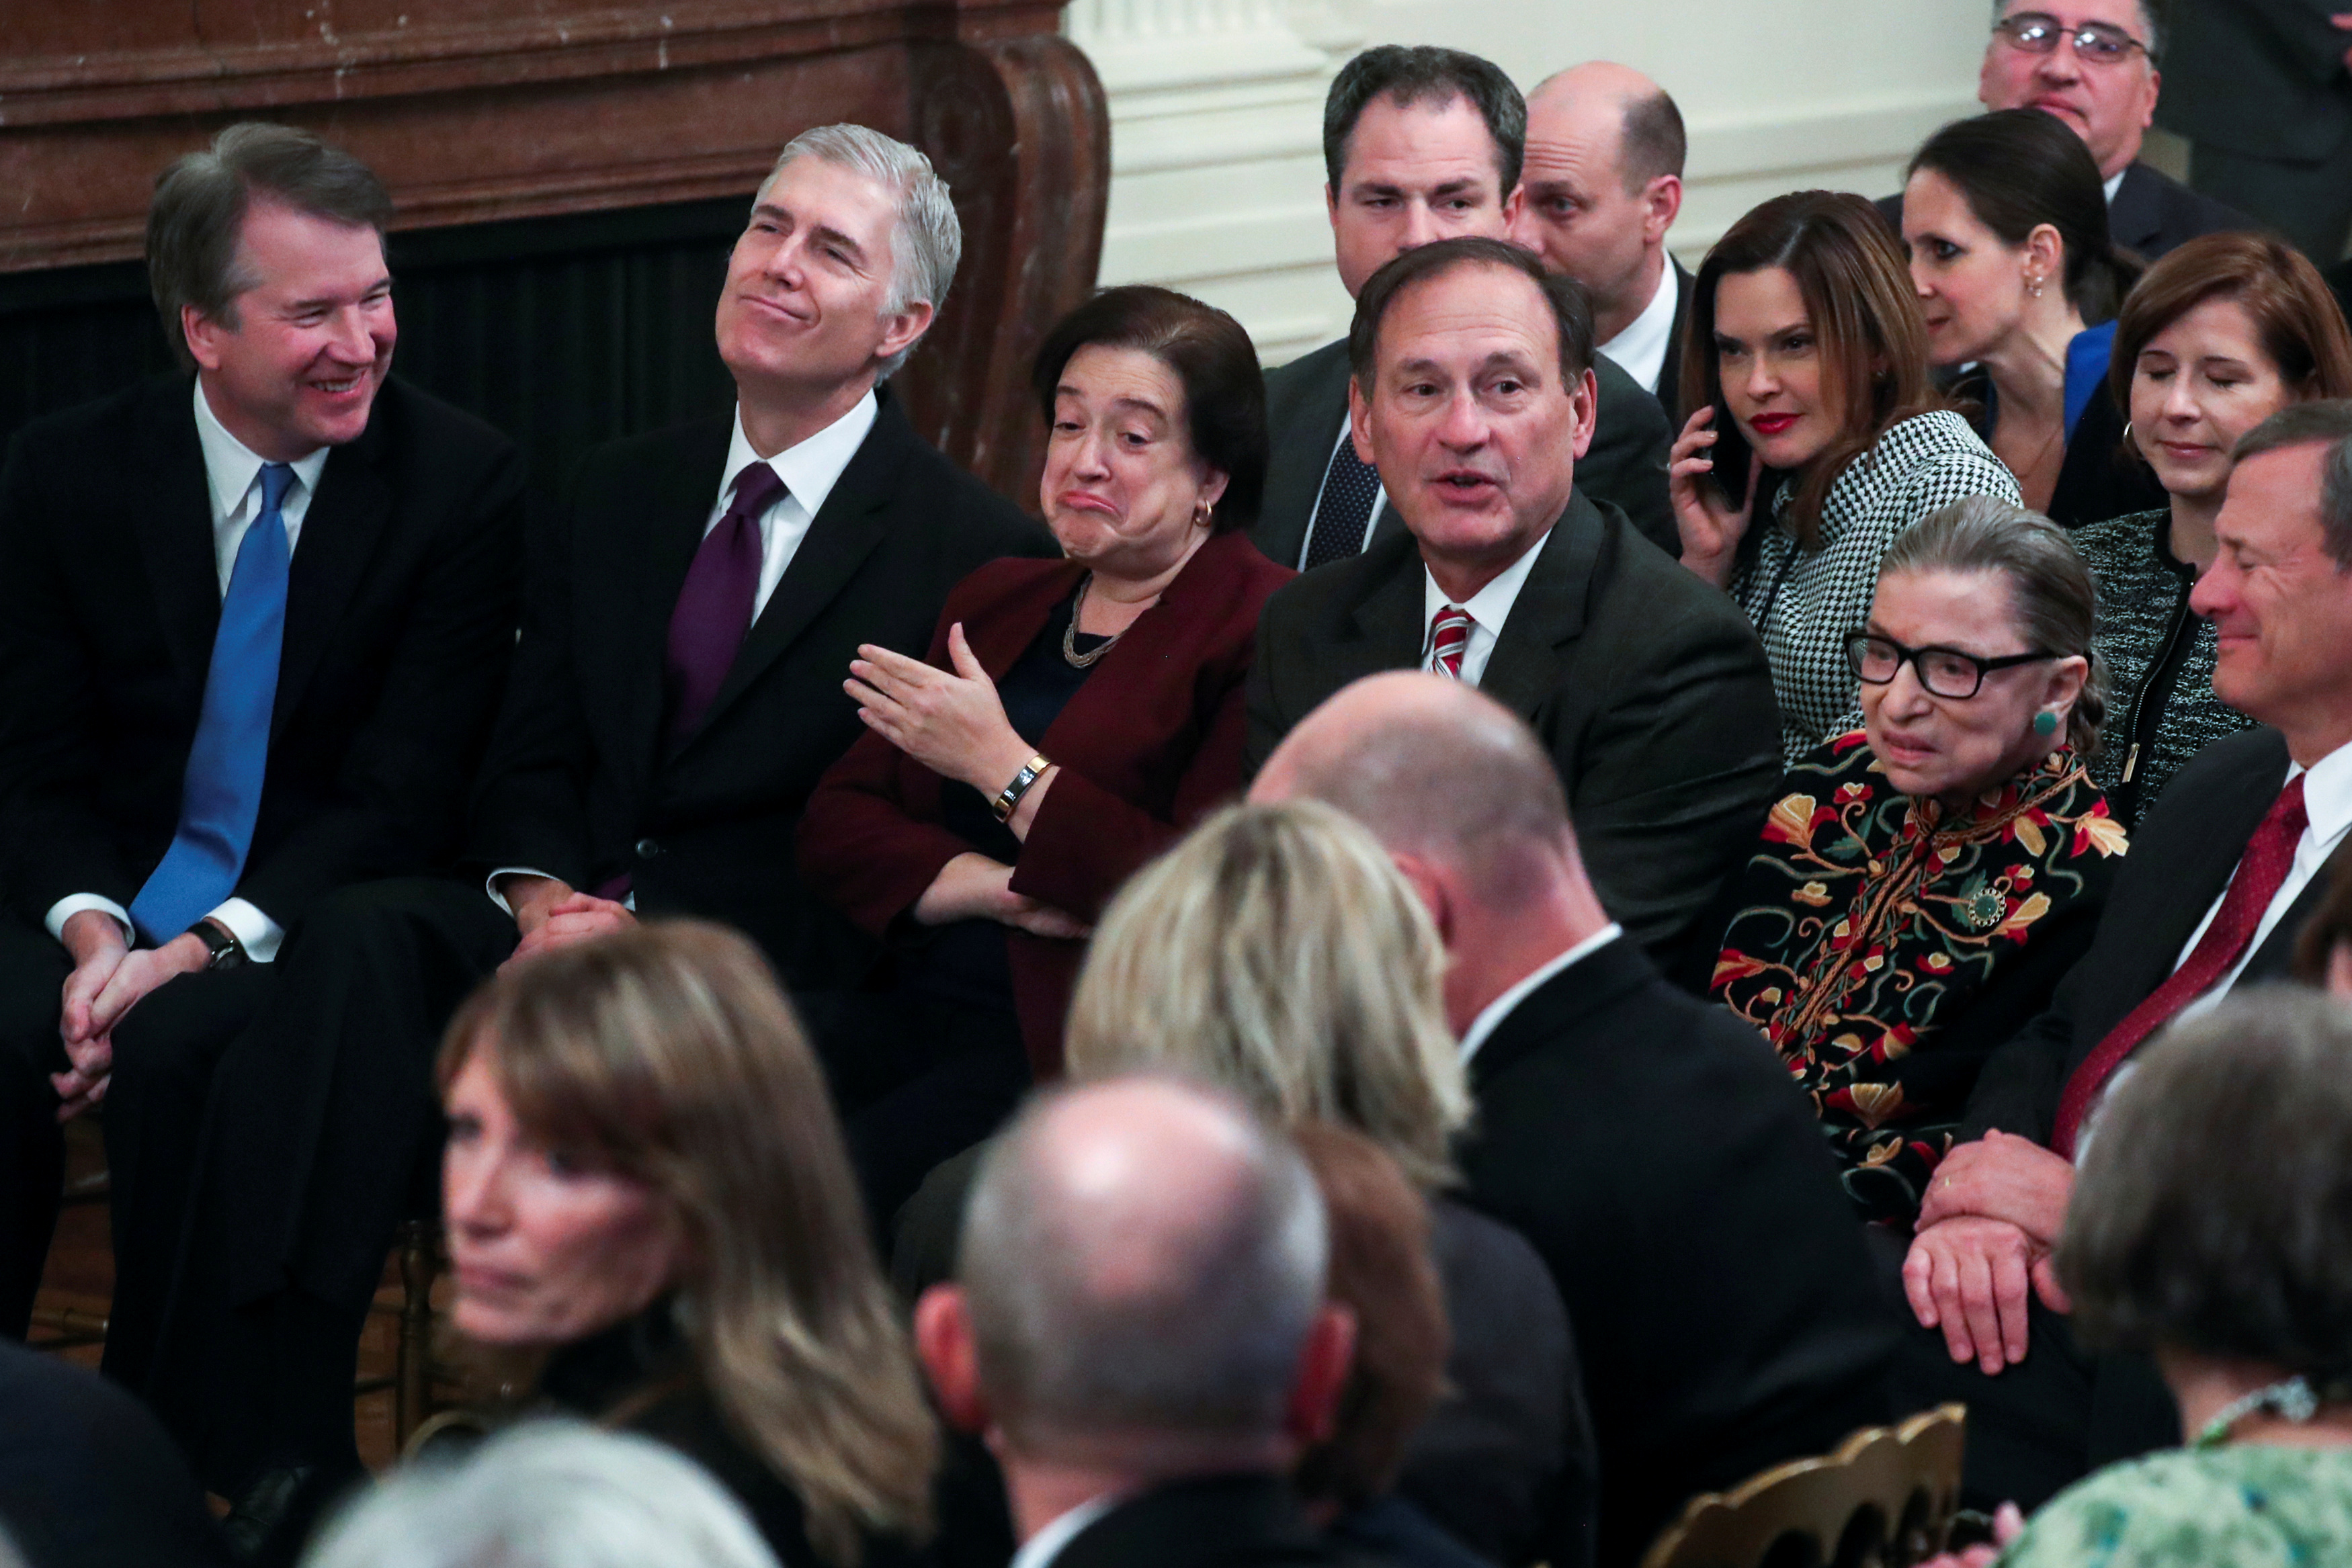 U.S. Supreme Court Associate Justices Brett Kavanaugh, Neil Gorsuch, Elena Kagan, Samuel Alito, Ruth Bader Ginsburg and Chief Justice John Roberts attend a ceremony with President Donald Trump awarding the 2018 Presidential Medals of Freedom in the East Room of the White House in Washington, U.S. November 16, 2018. REUTERS/Jonathan Ernst